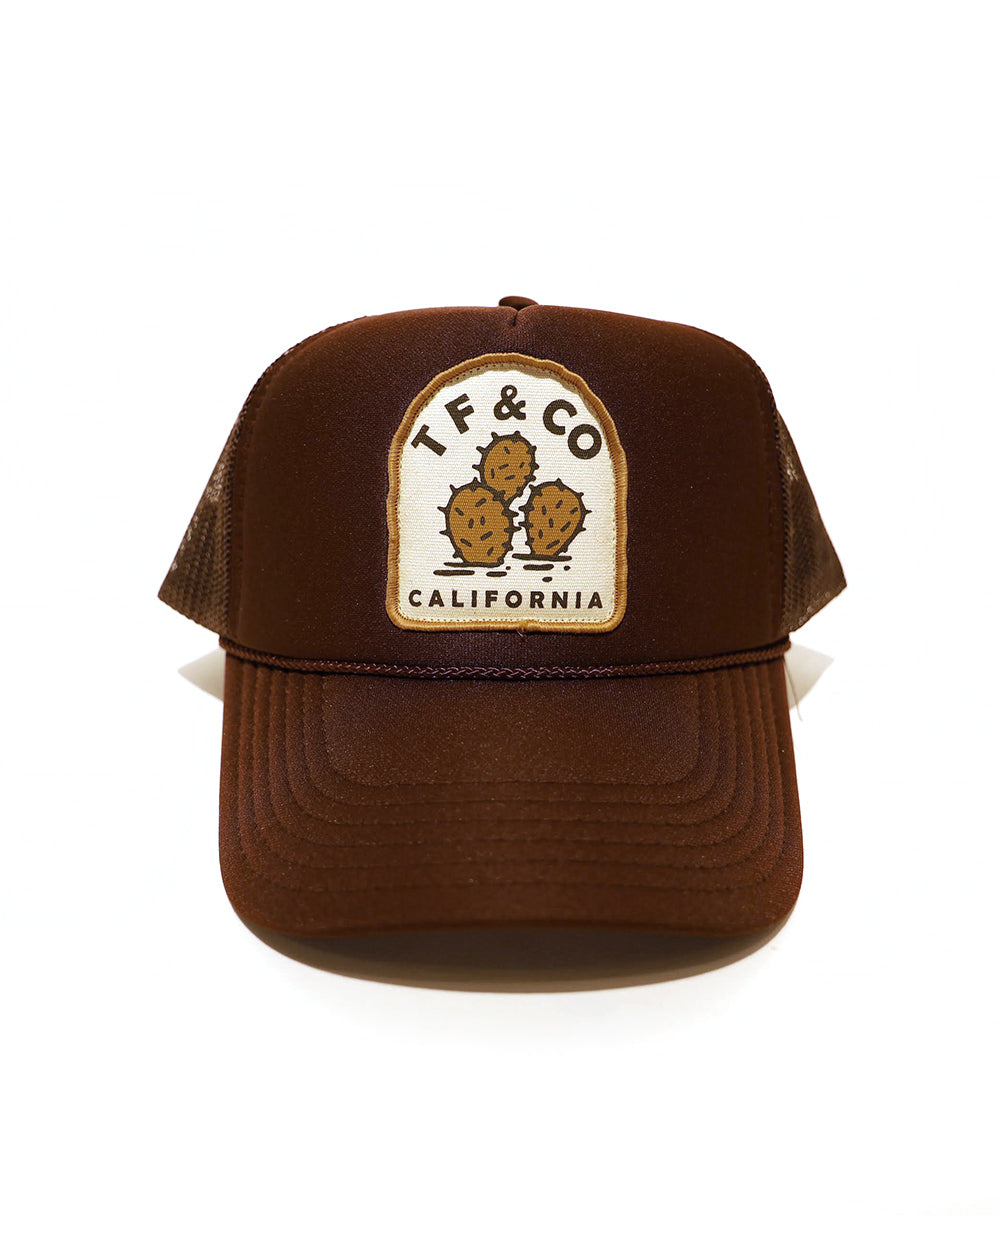 TF CACTUS FOAM TRUCKER - BROWN - Tankfarm & Co.